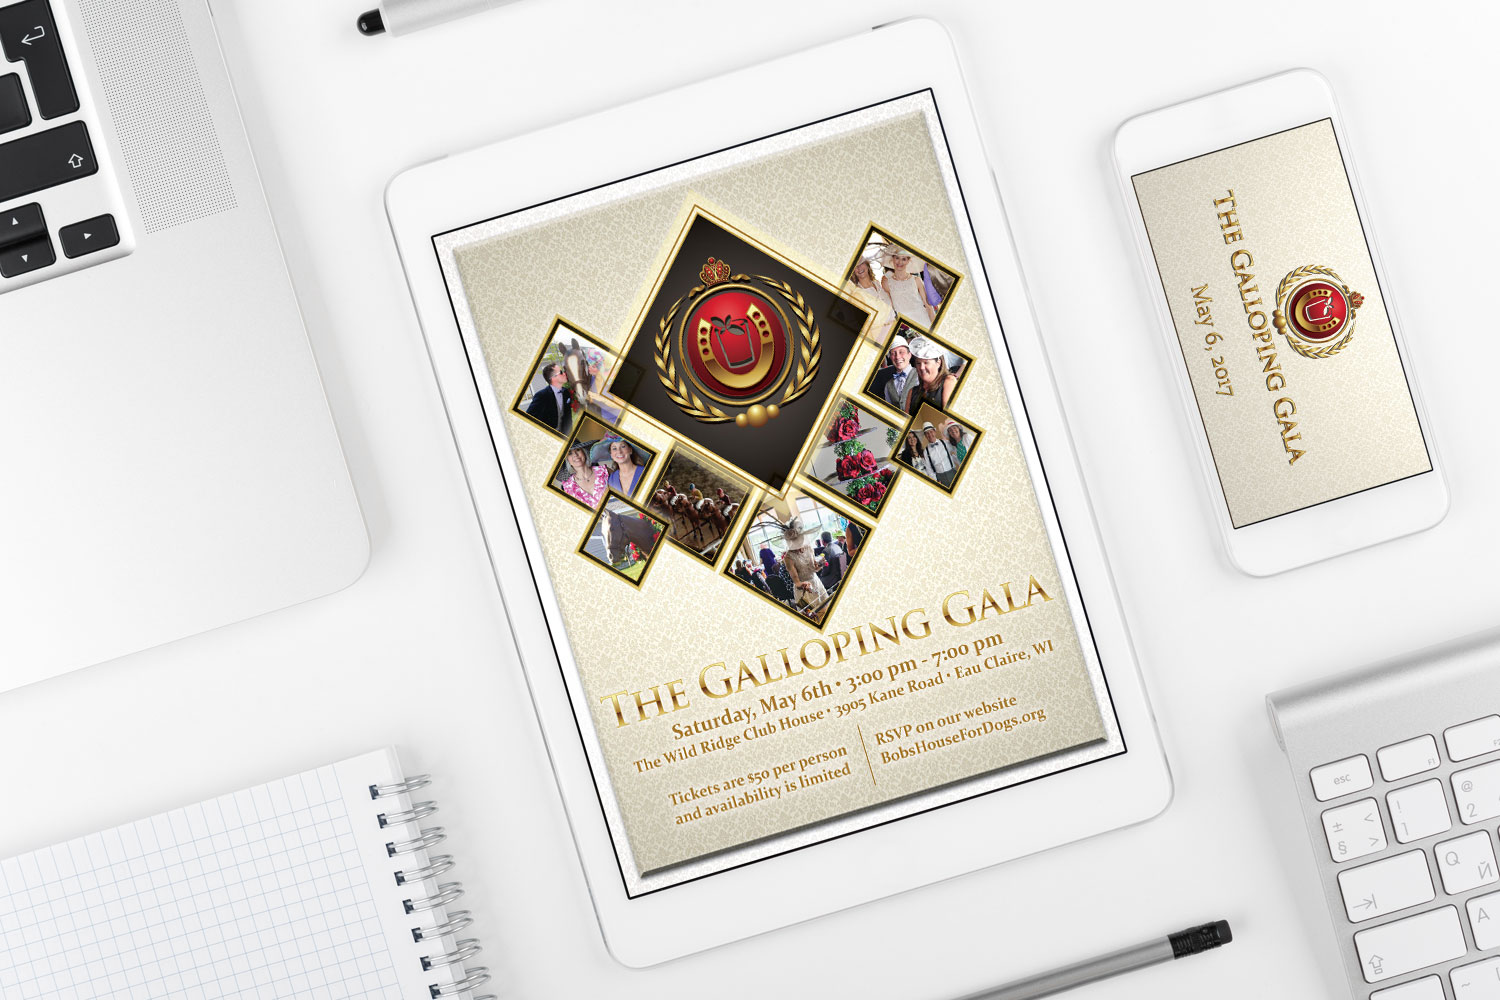 Galloping Gala Facebook Ad on Tablet